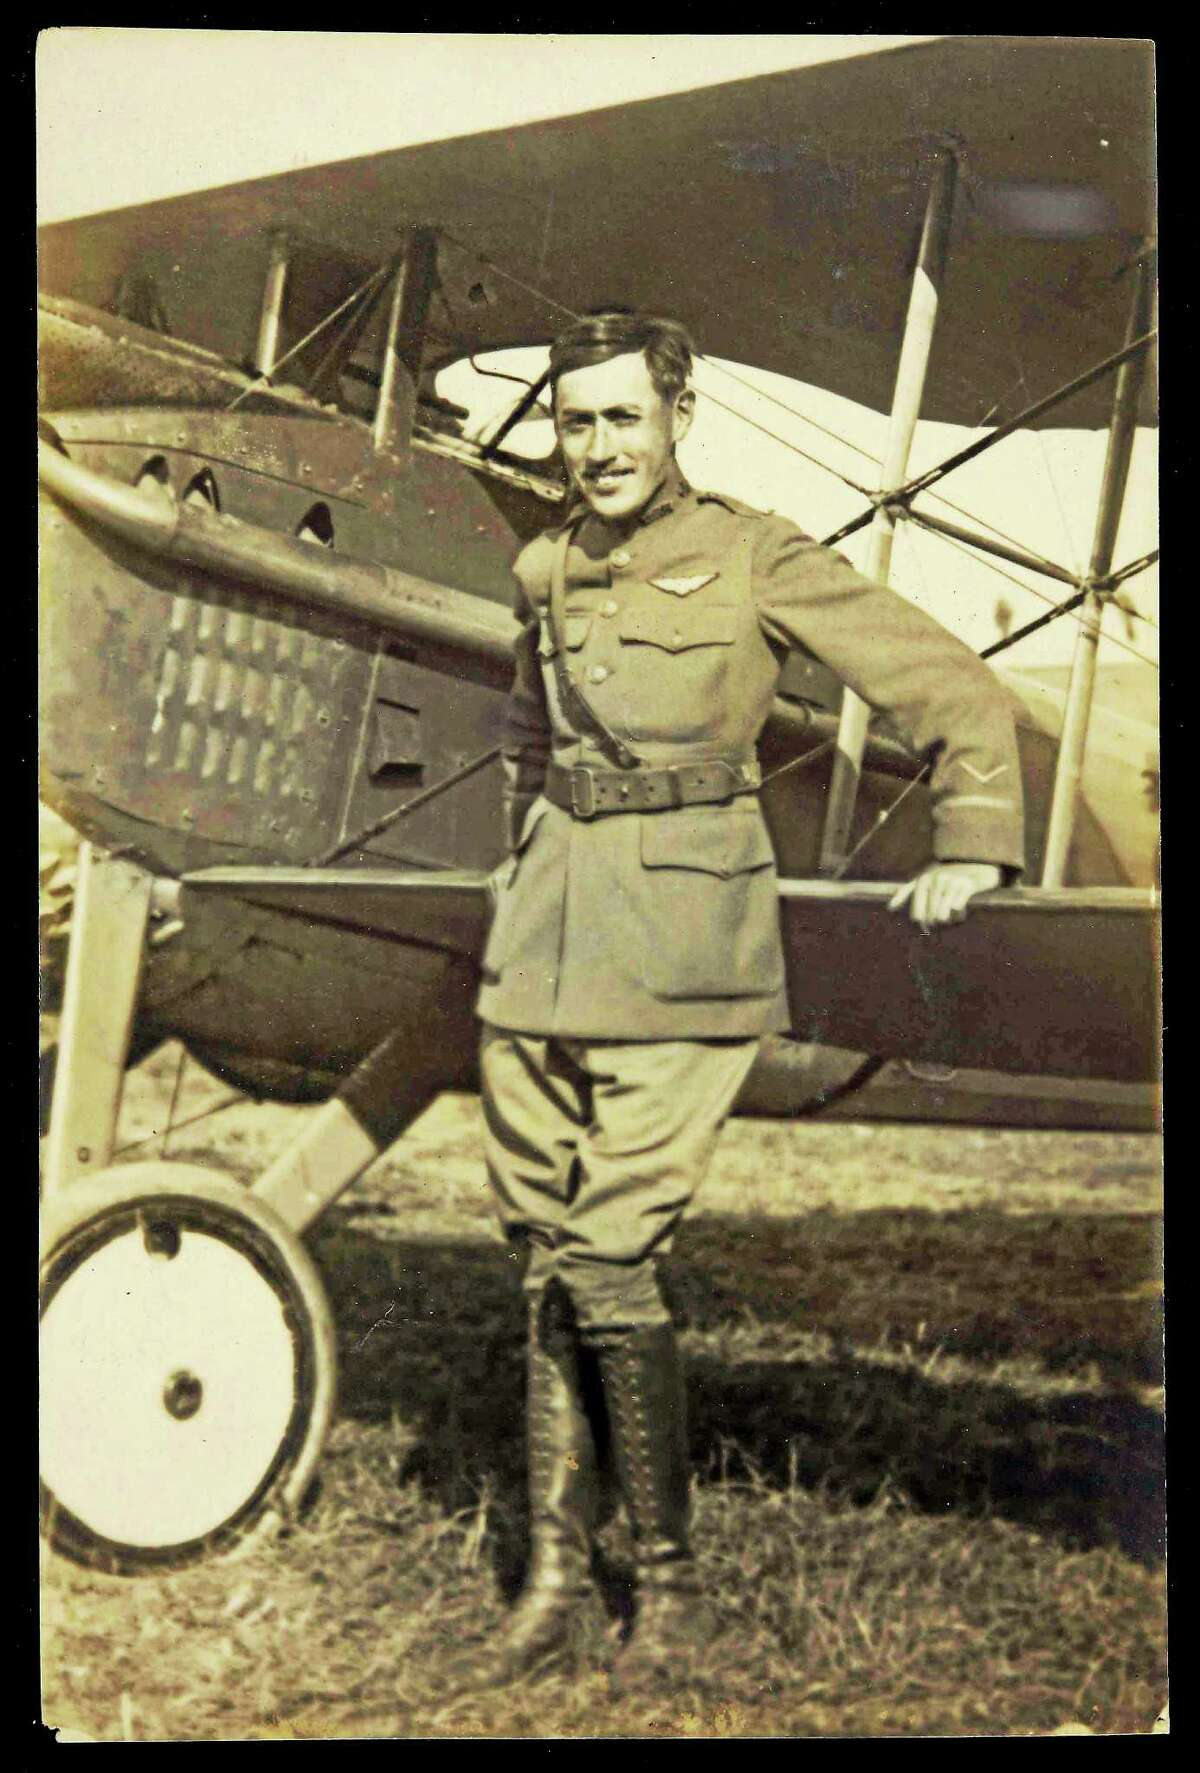 Lt. Gilbert Nelson Jerome with his biplane. He was shot down and killed by German forces in July 1918.